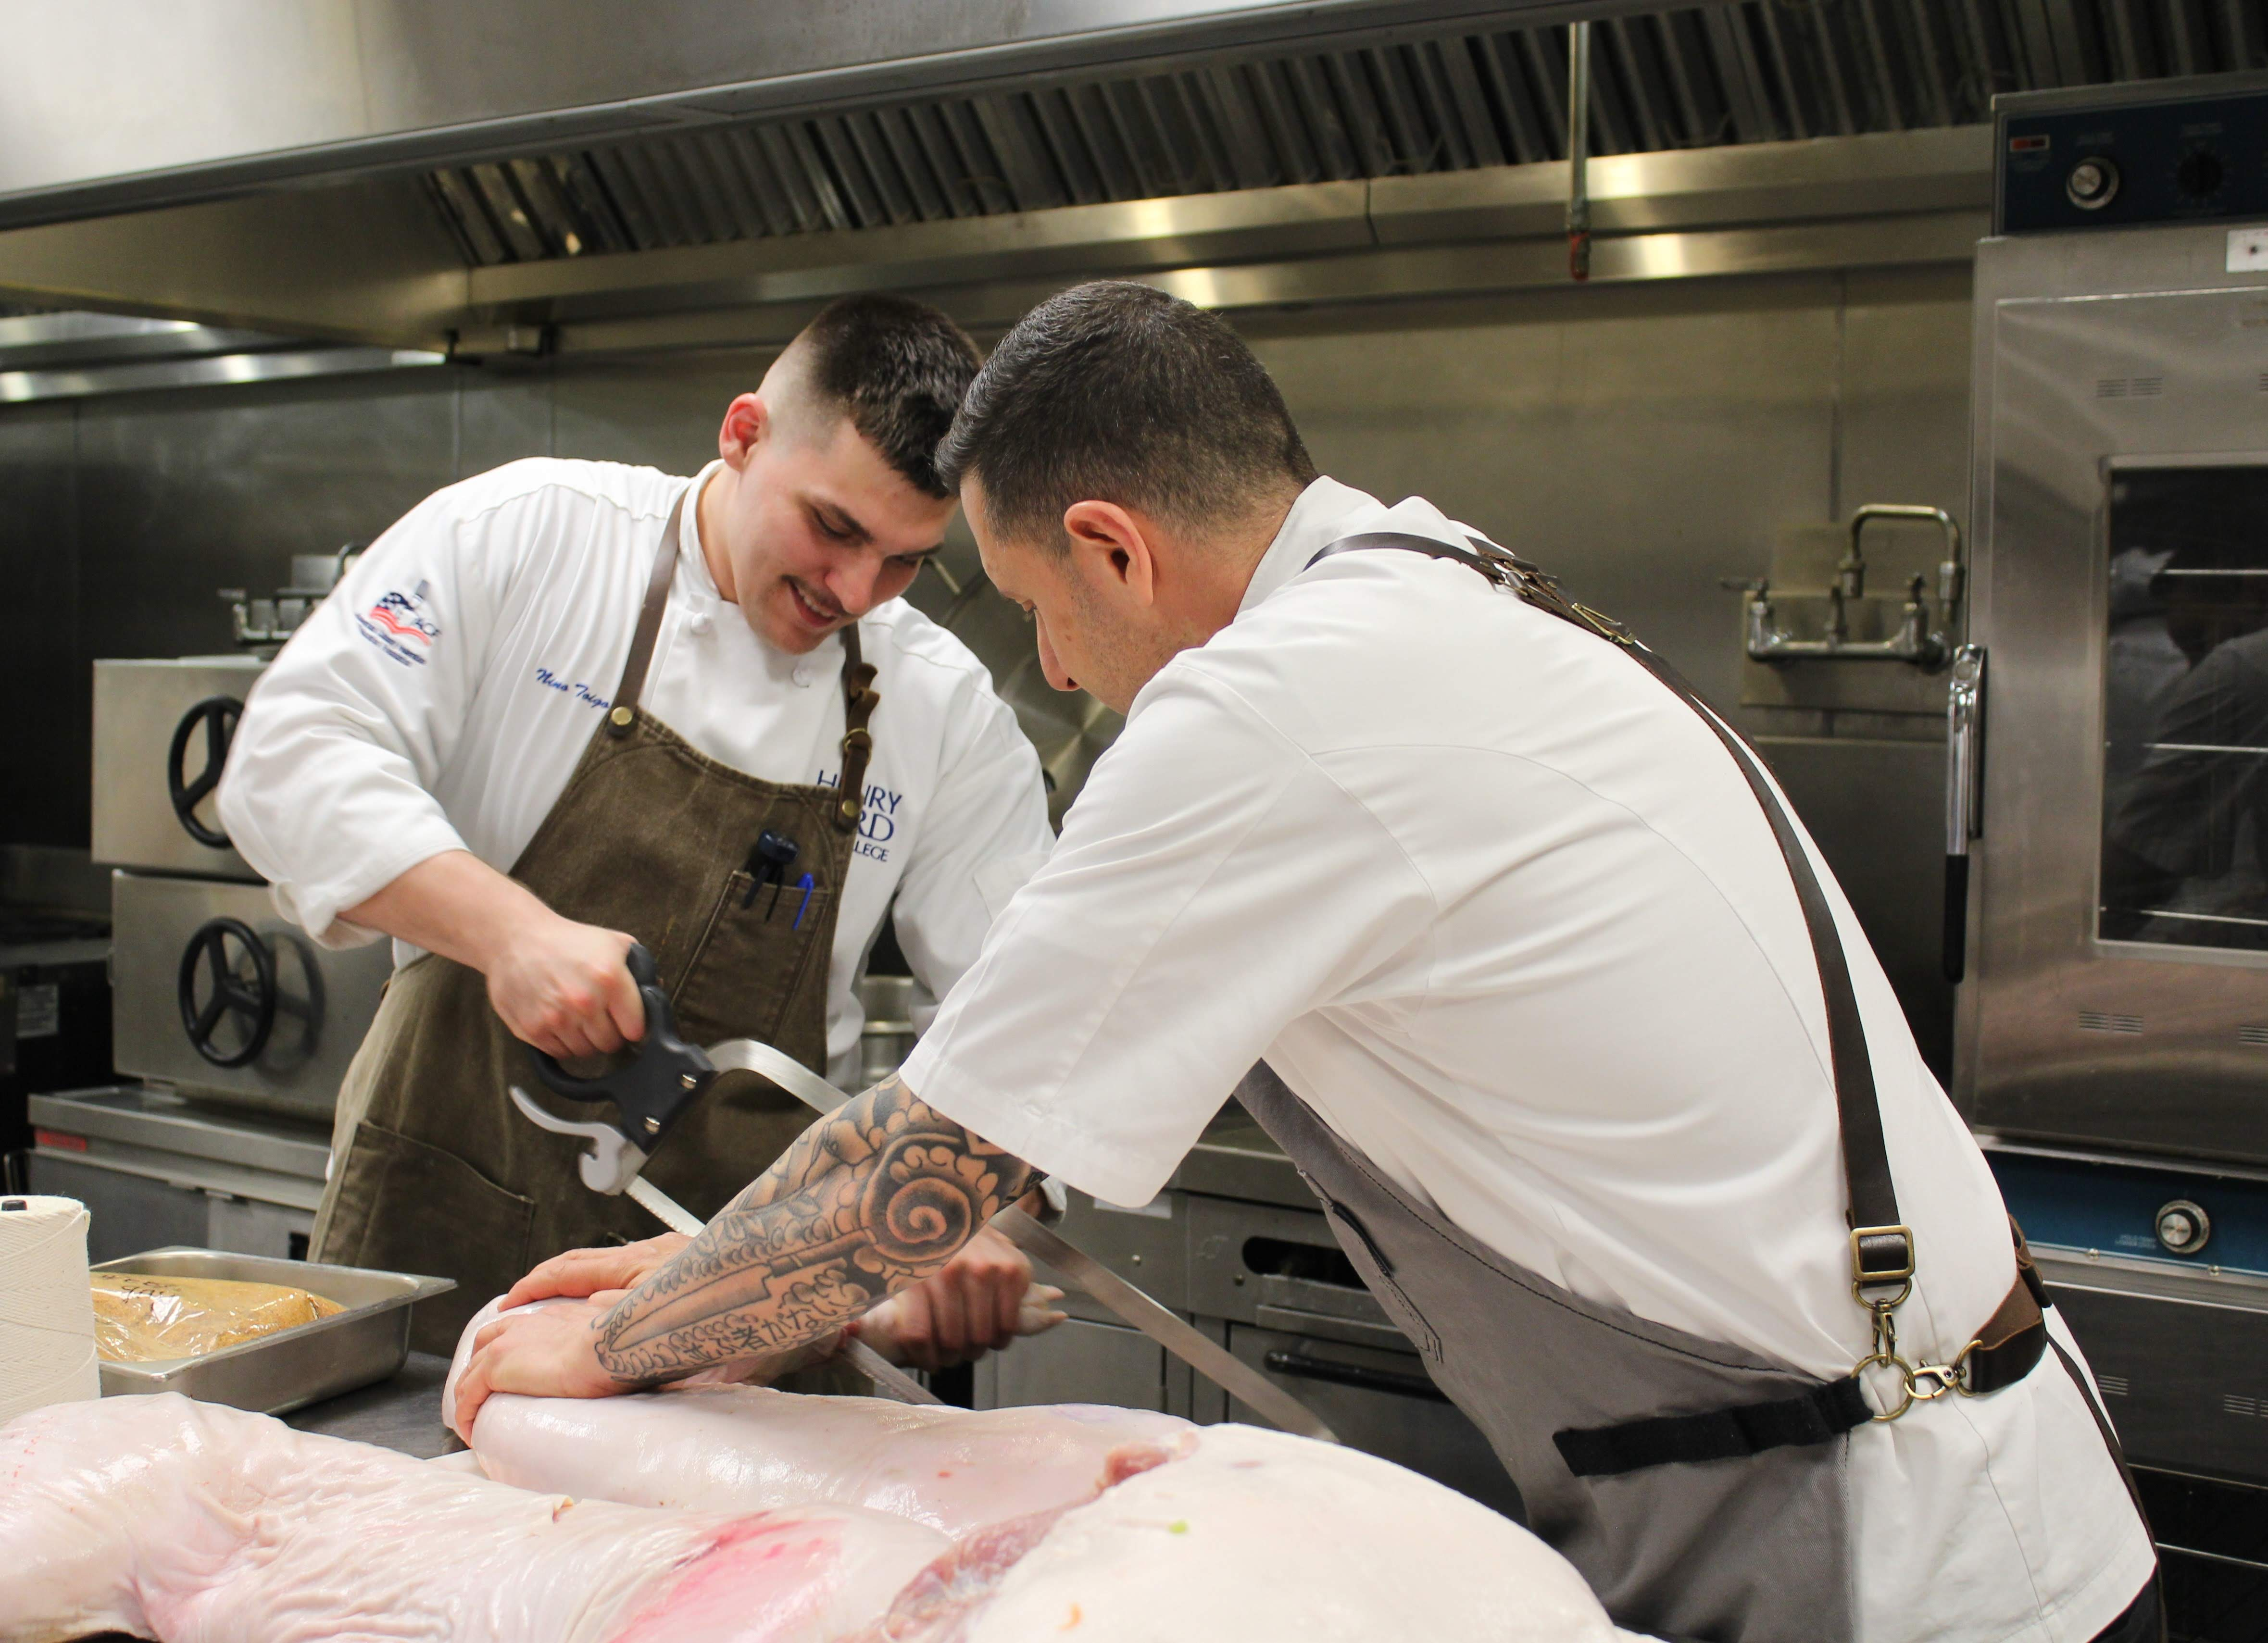 Chef Cosenza instructing Sous Chef Nino Toigo on butchering techniques